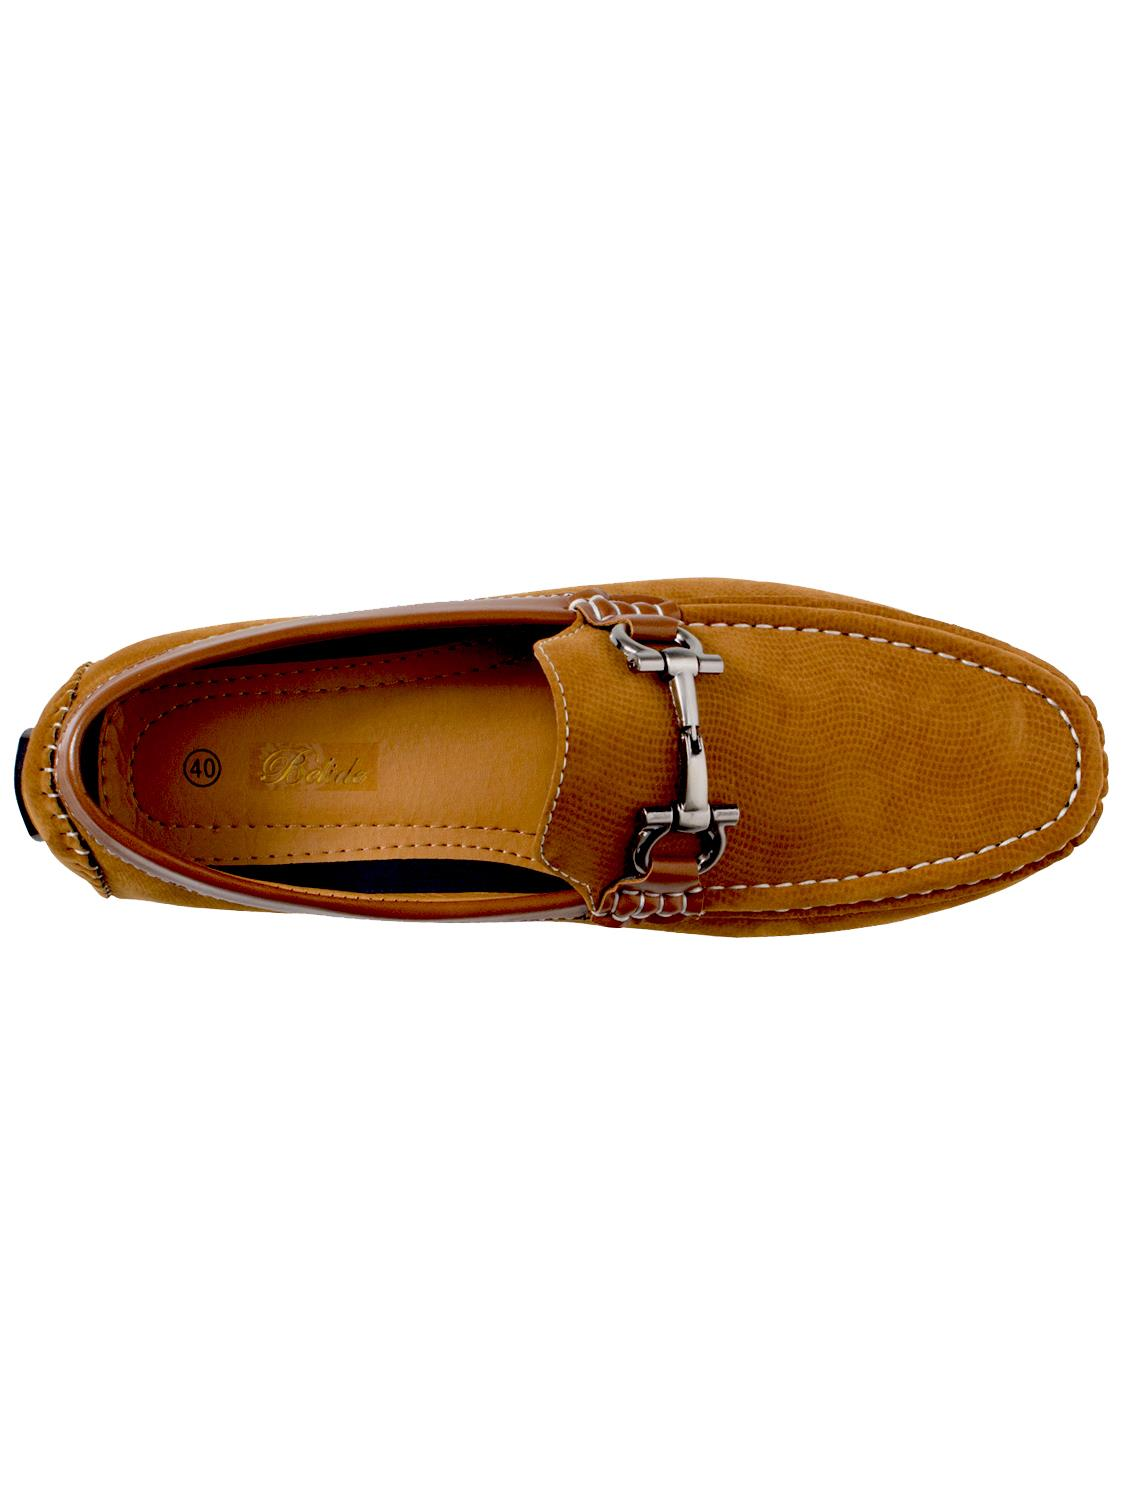 Mens-Slip-Ons-Shoes-Boat-Deck-Driving-Smart-Buckle-Moccasins-Suede-Look-Loafers thumbnail 85